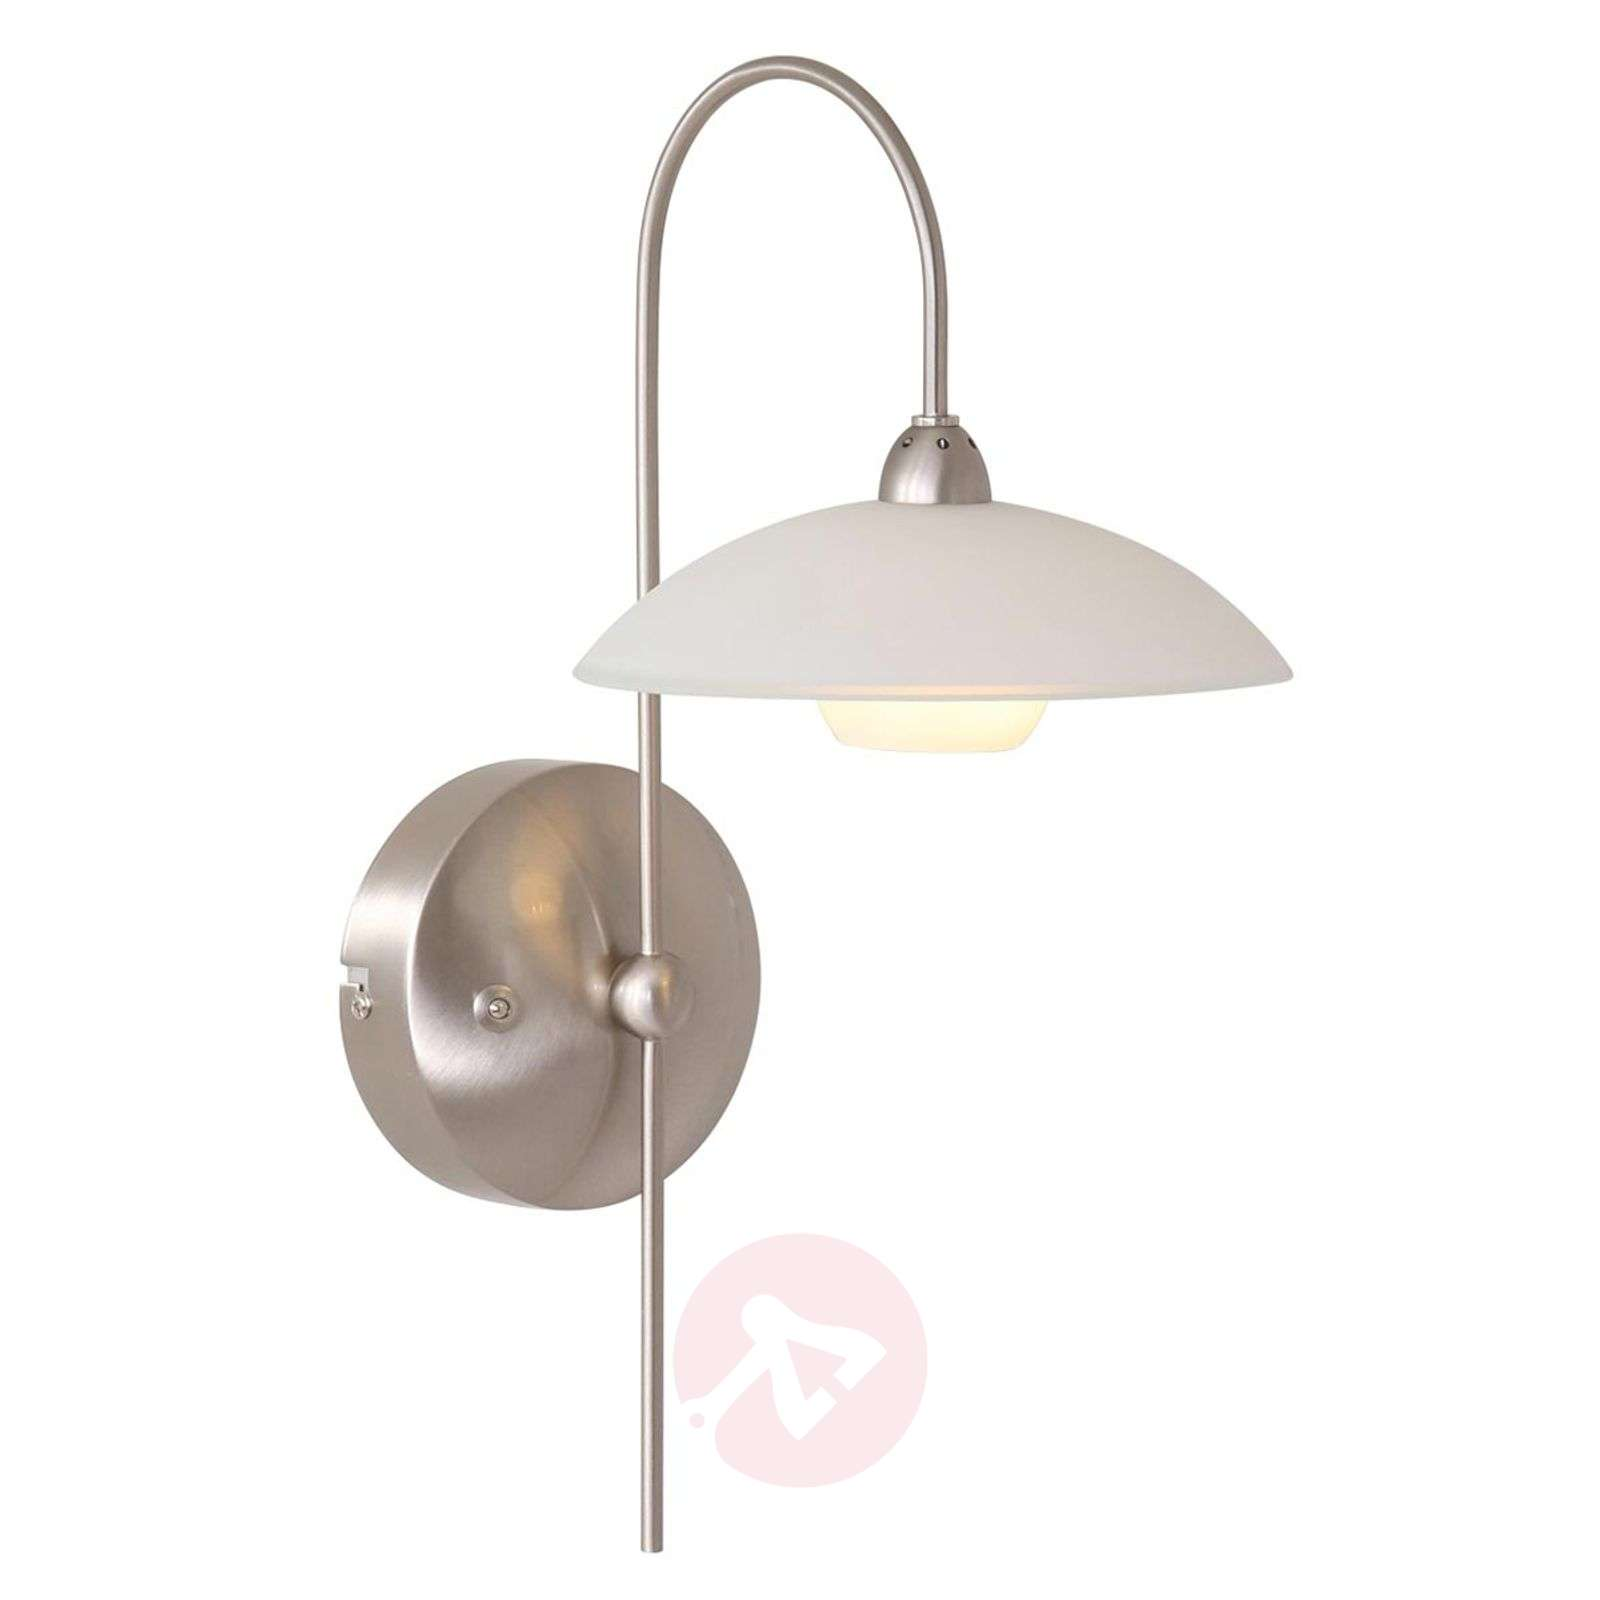 Led wall light monarch 1 bulb with push dimmer lights led wall light monarch 1 bulb with push dimmer 8509739 01 aloadofball Image collections